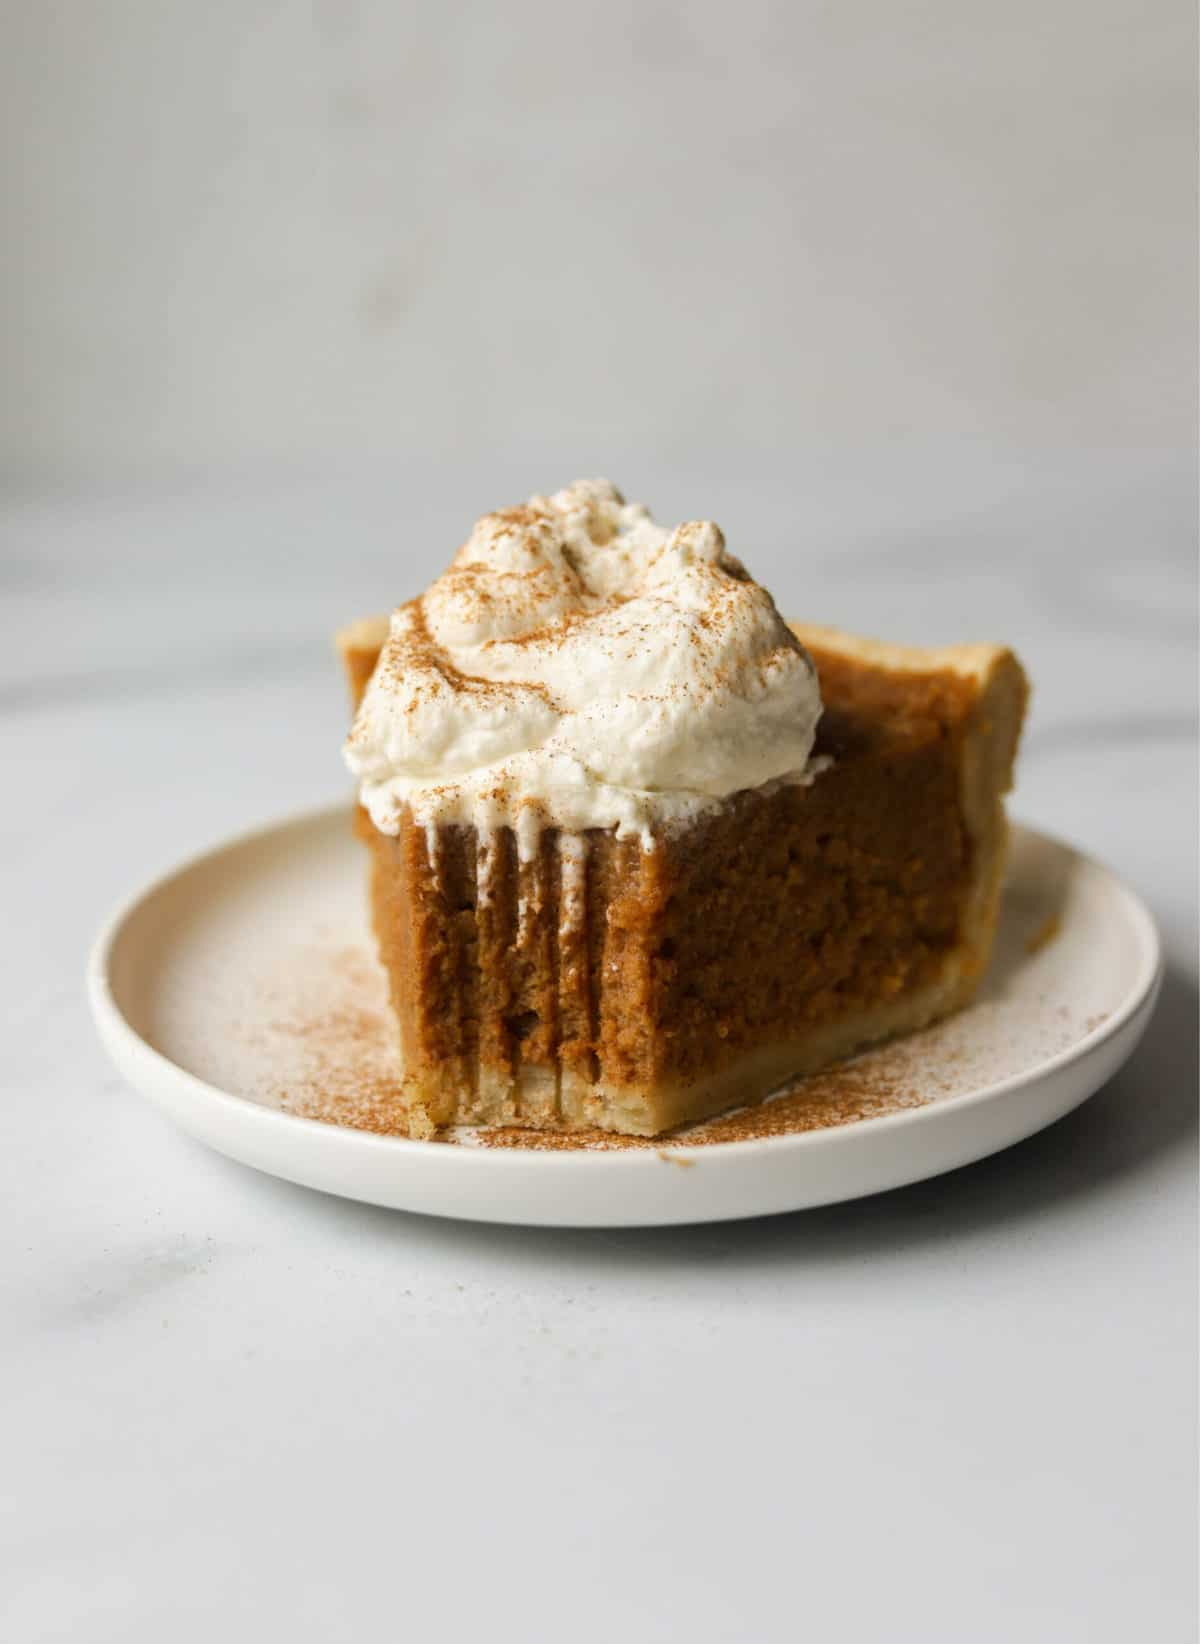 A side shot of a slice of sweet potato pie with a bite taken out of it.